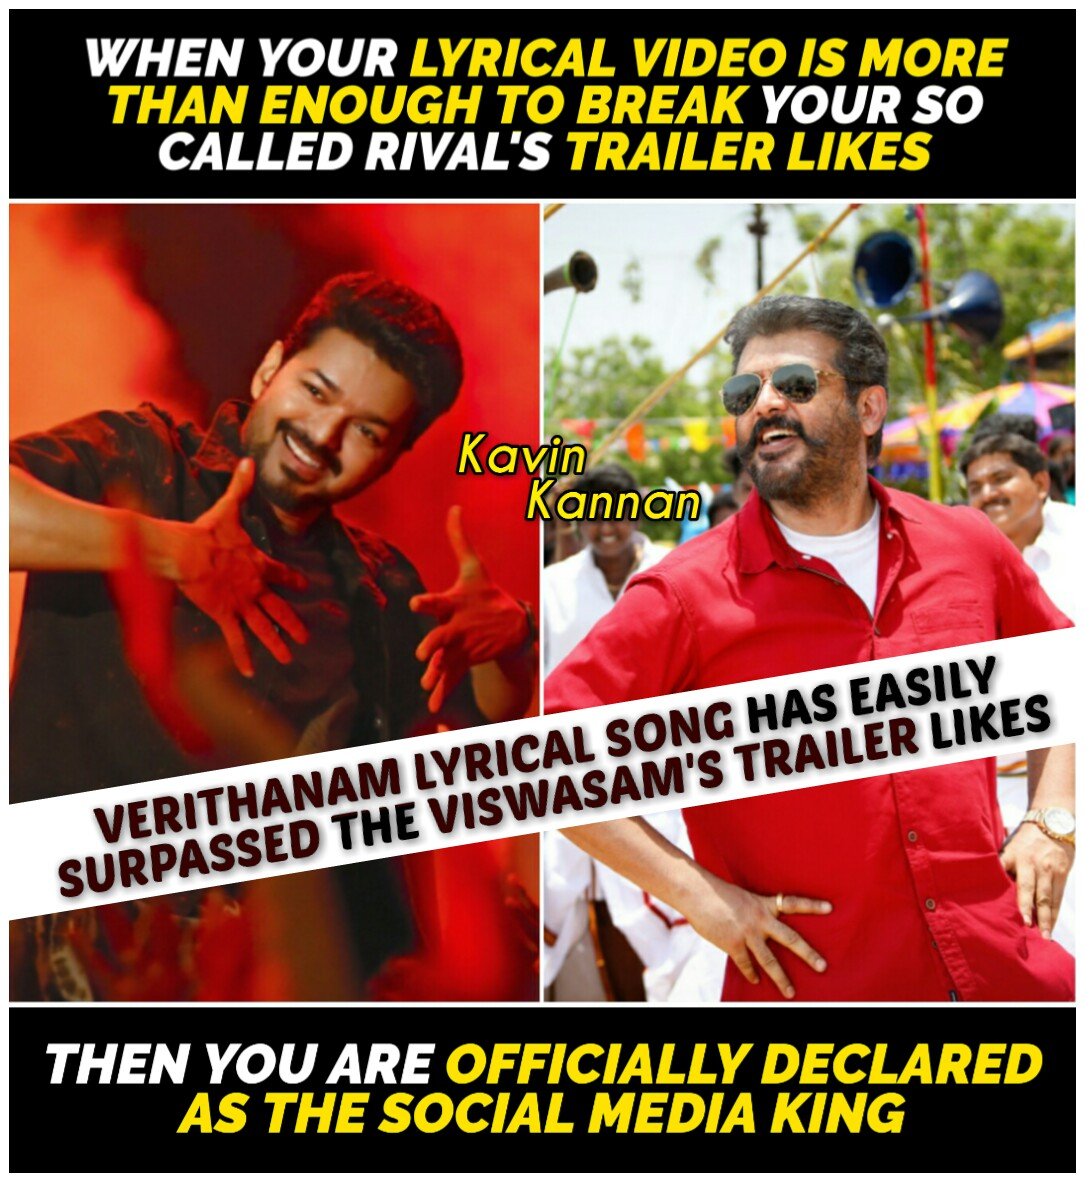 #Verithanam lyrical video song has crossed the lifetime likes of #Viswasam trailer 😎👊🔥  S O C I A L  M E D I A  K I N G 👑   #Master @actorvijay ❤